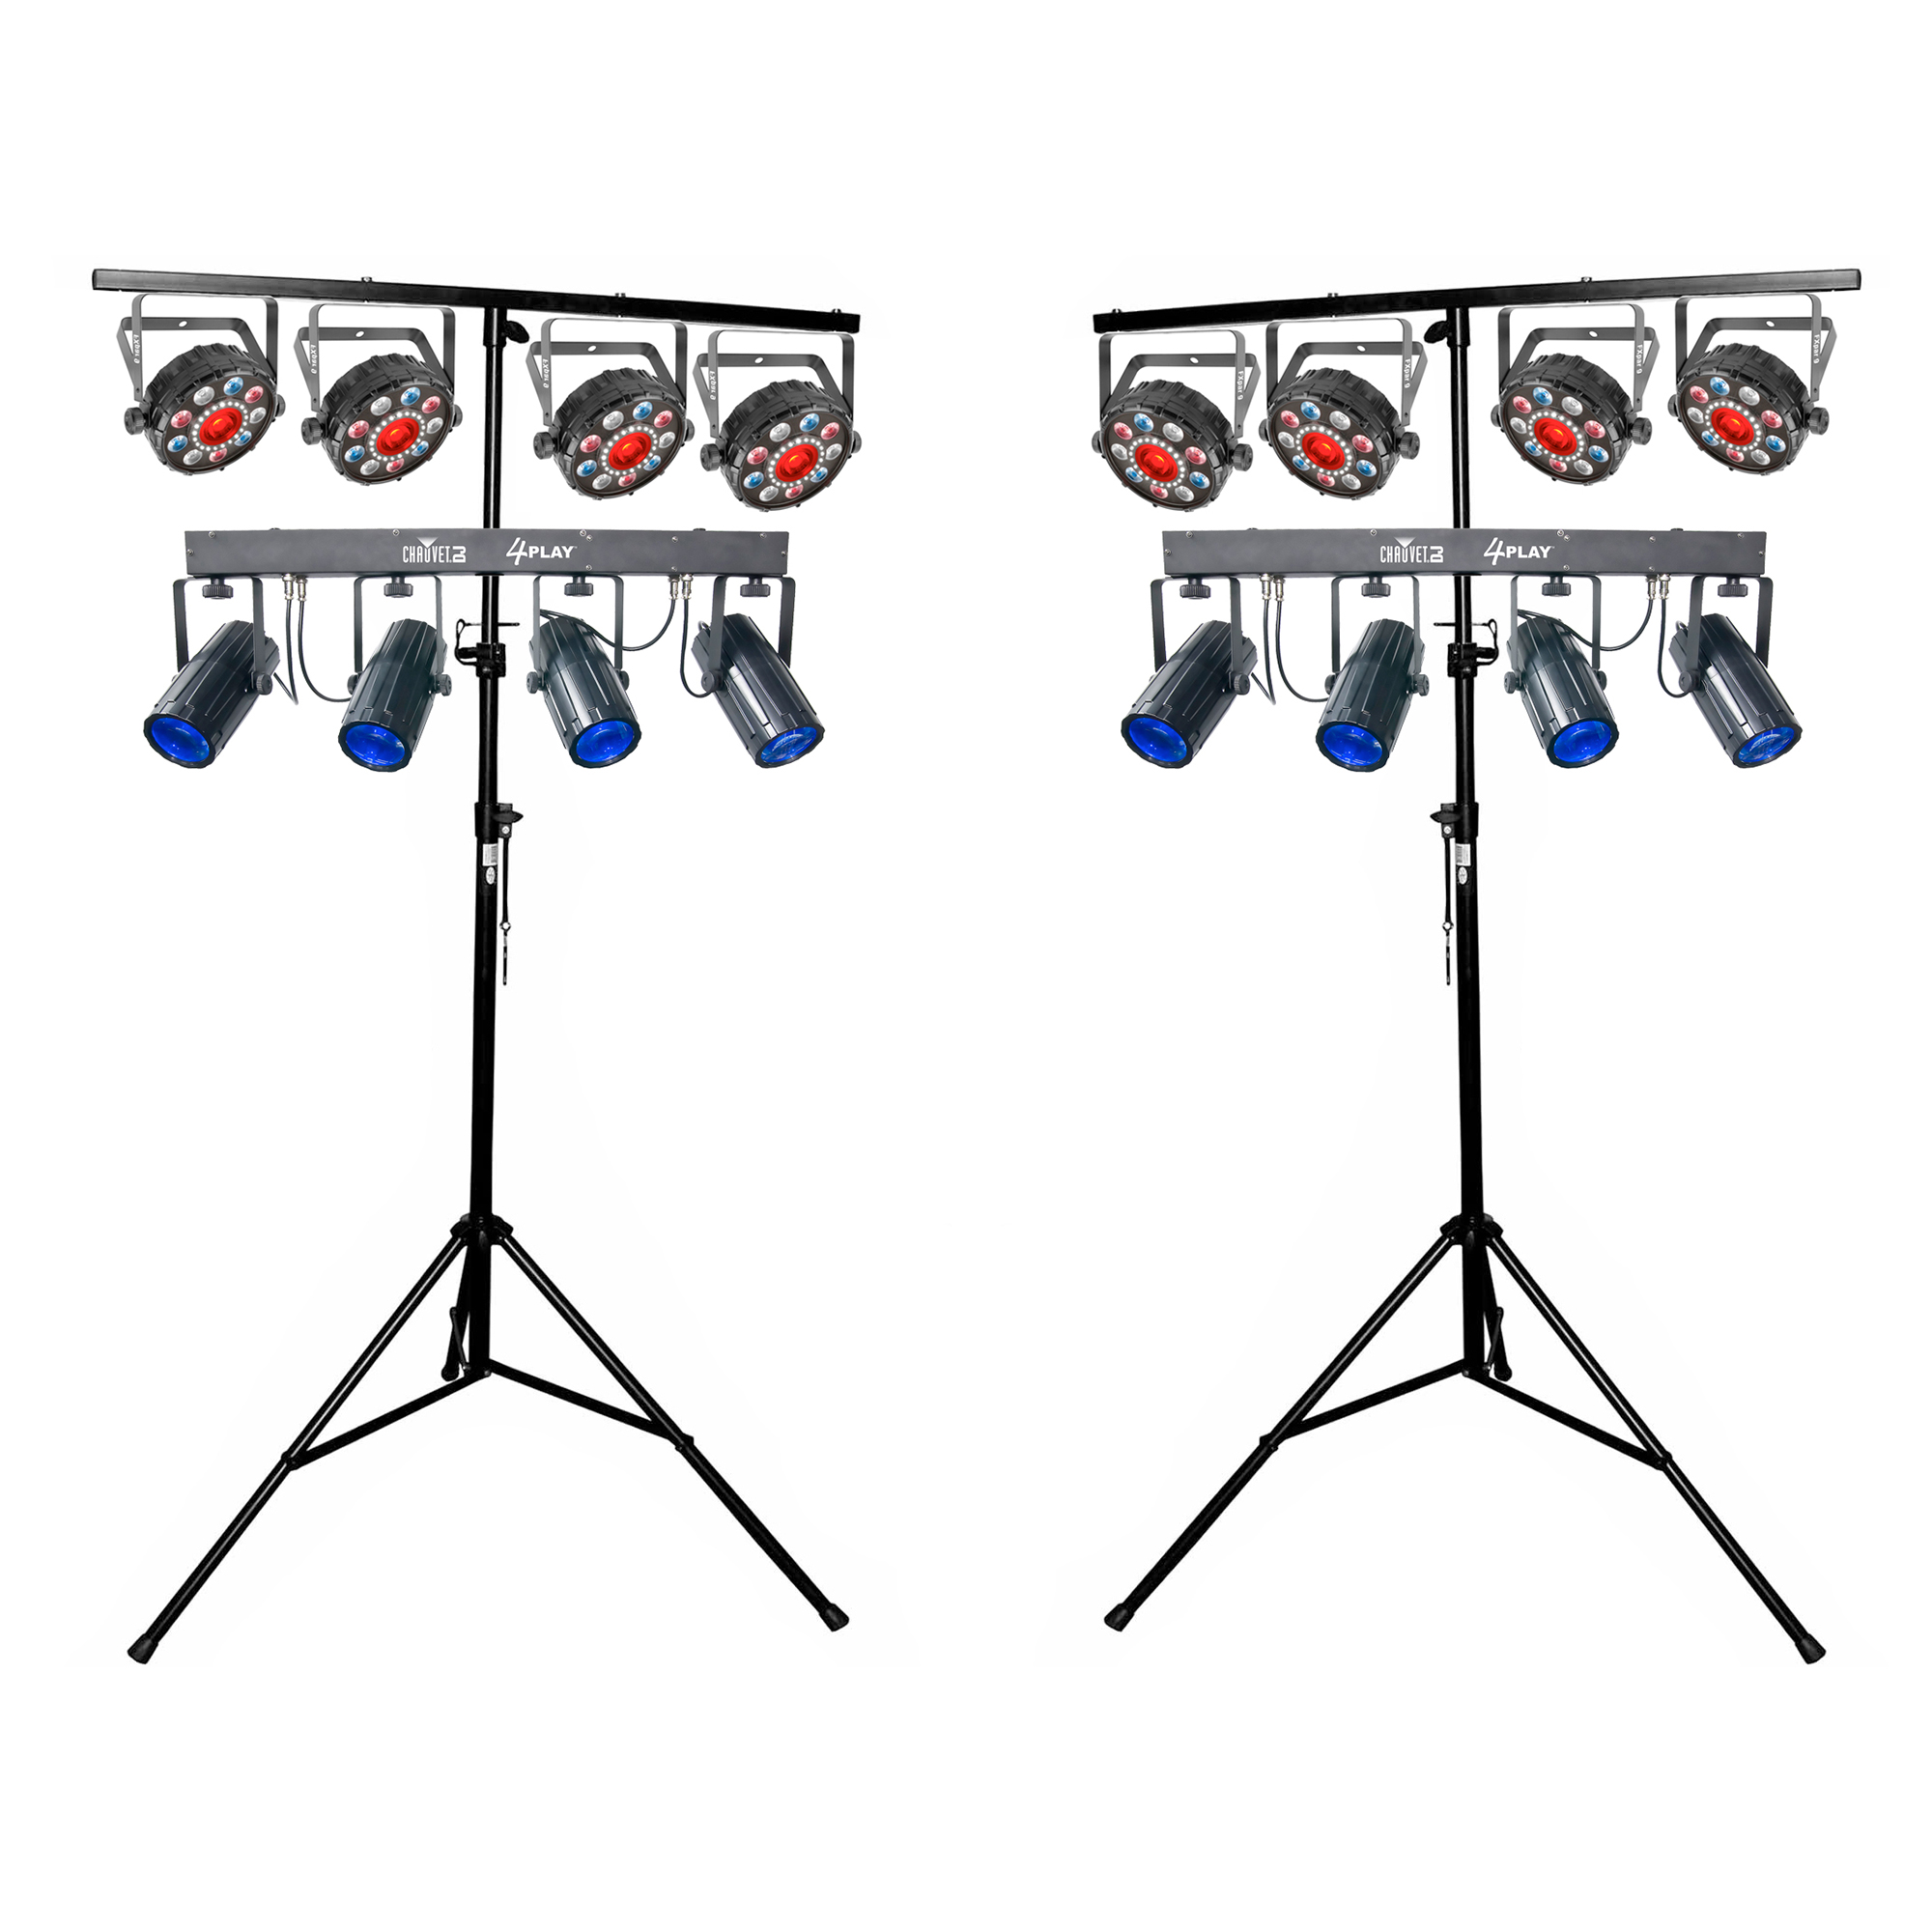 Chauvet Dj 4play Fxpar 9 Pack